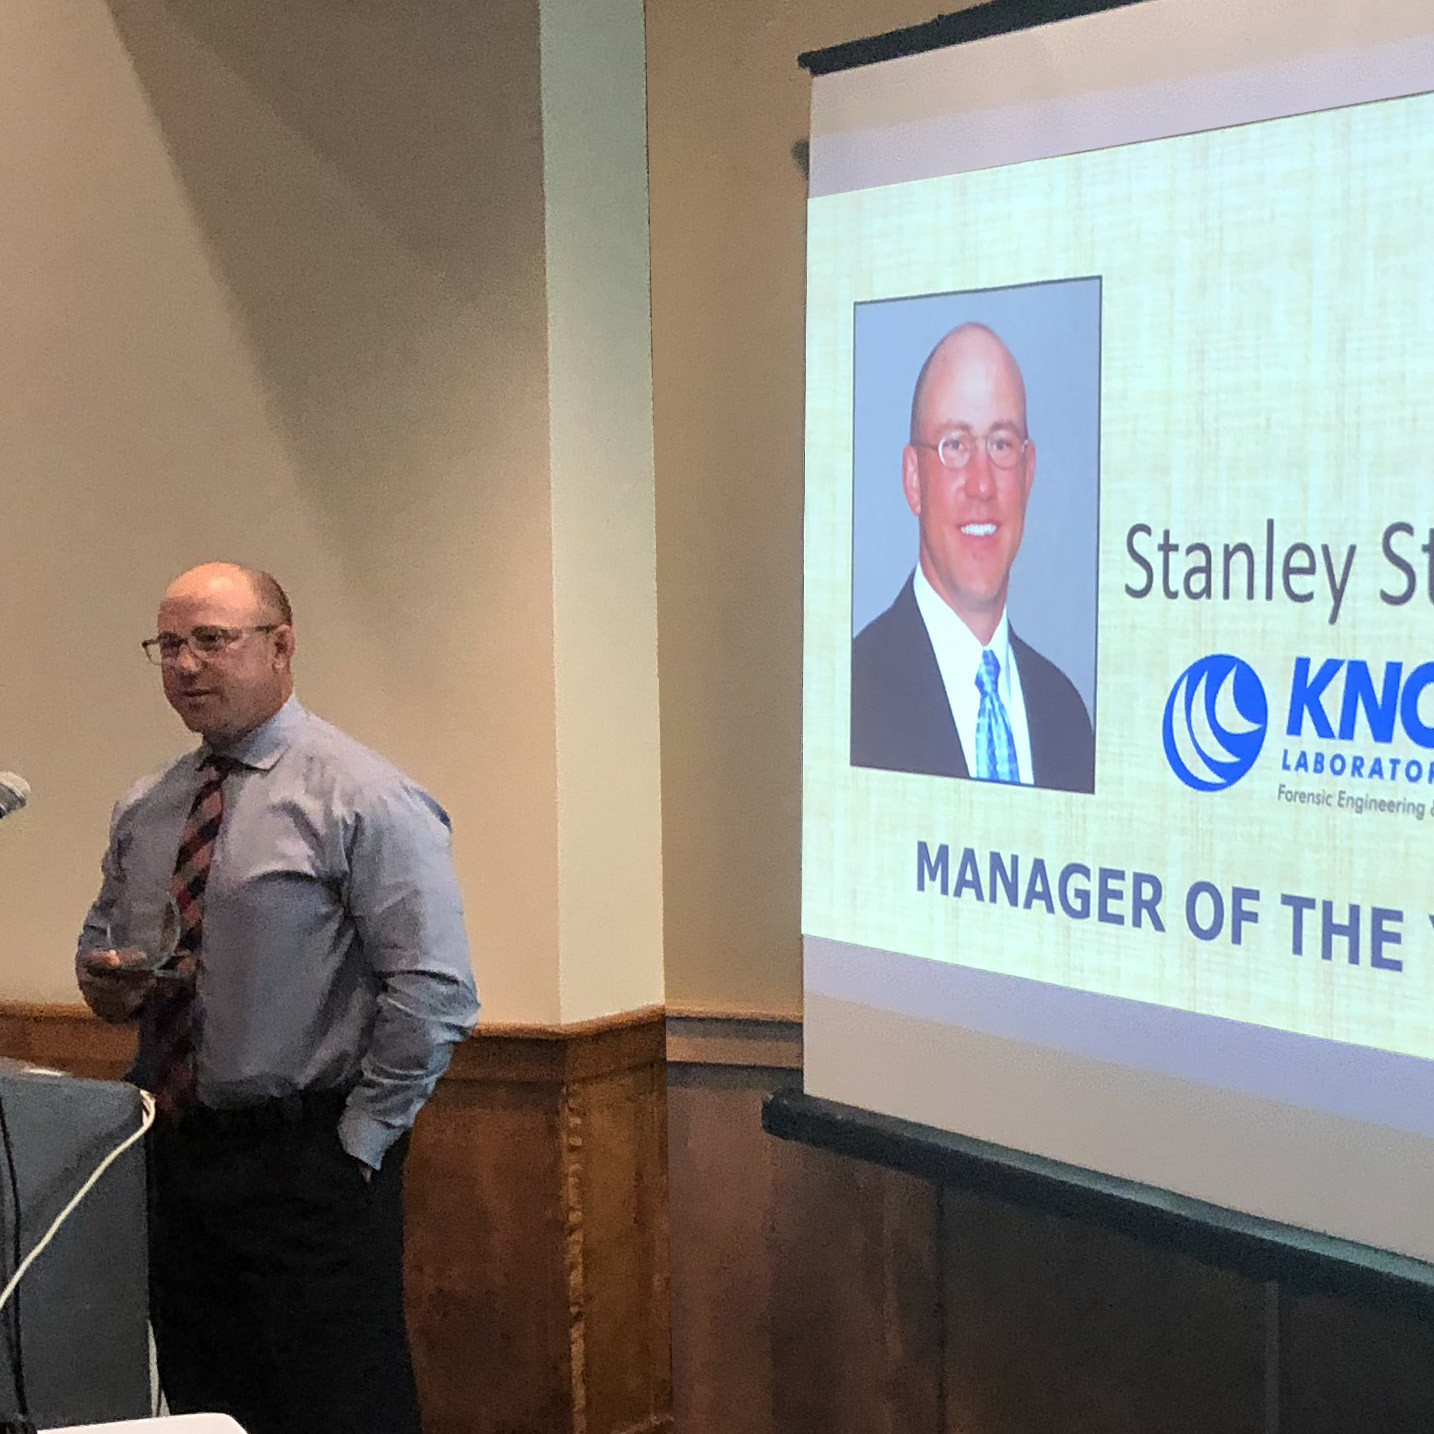 Stanley Stoll accepting Manager of the Year award